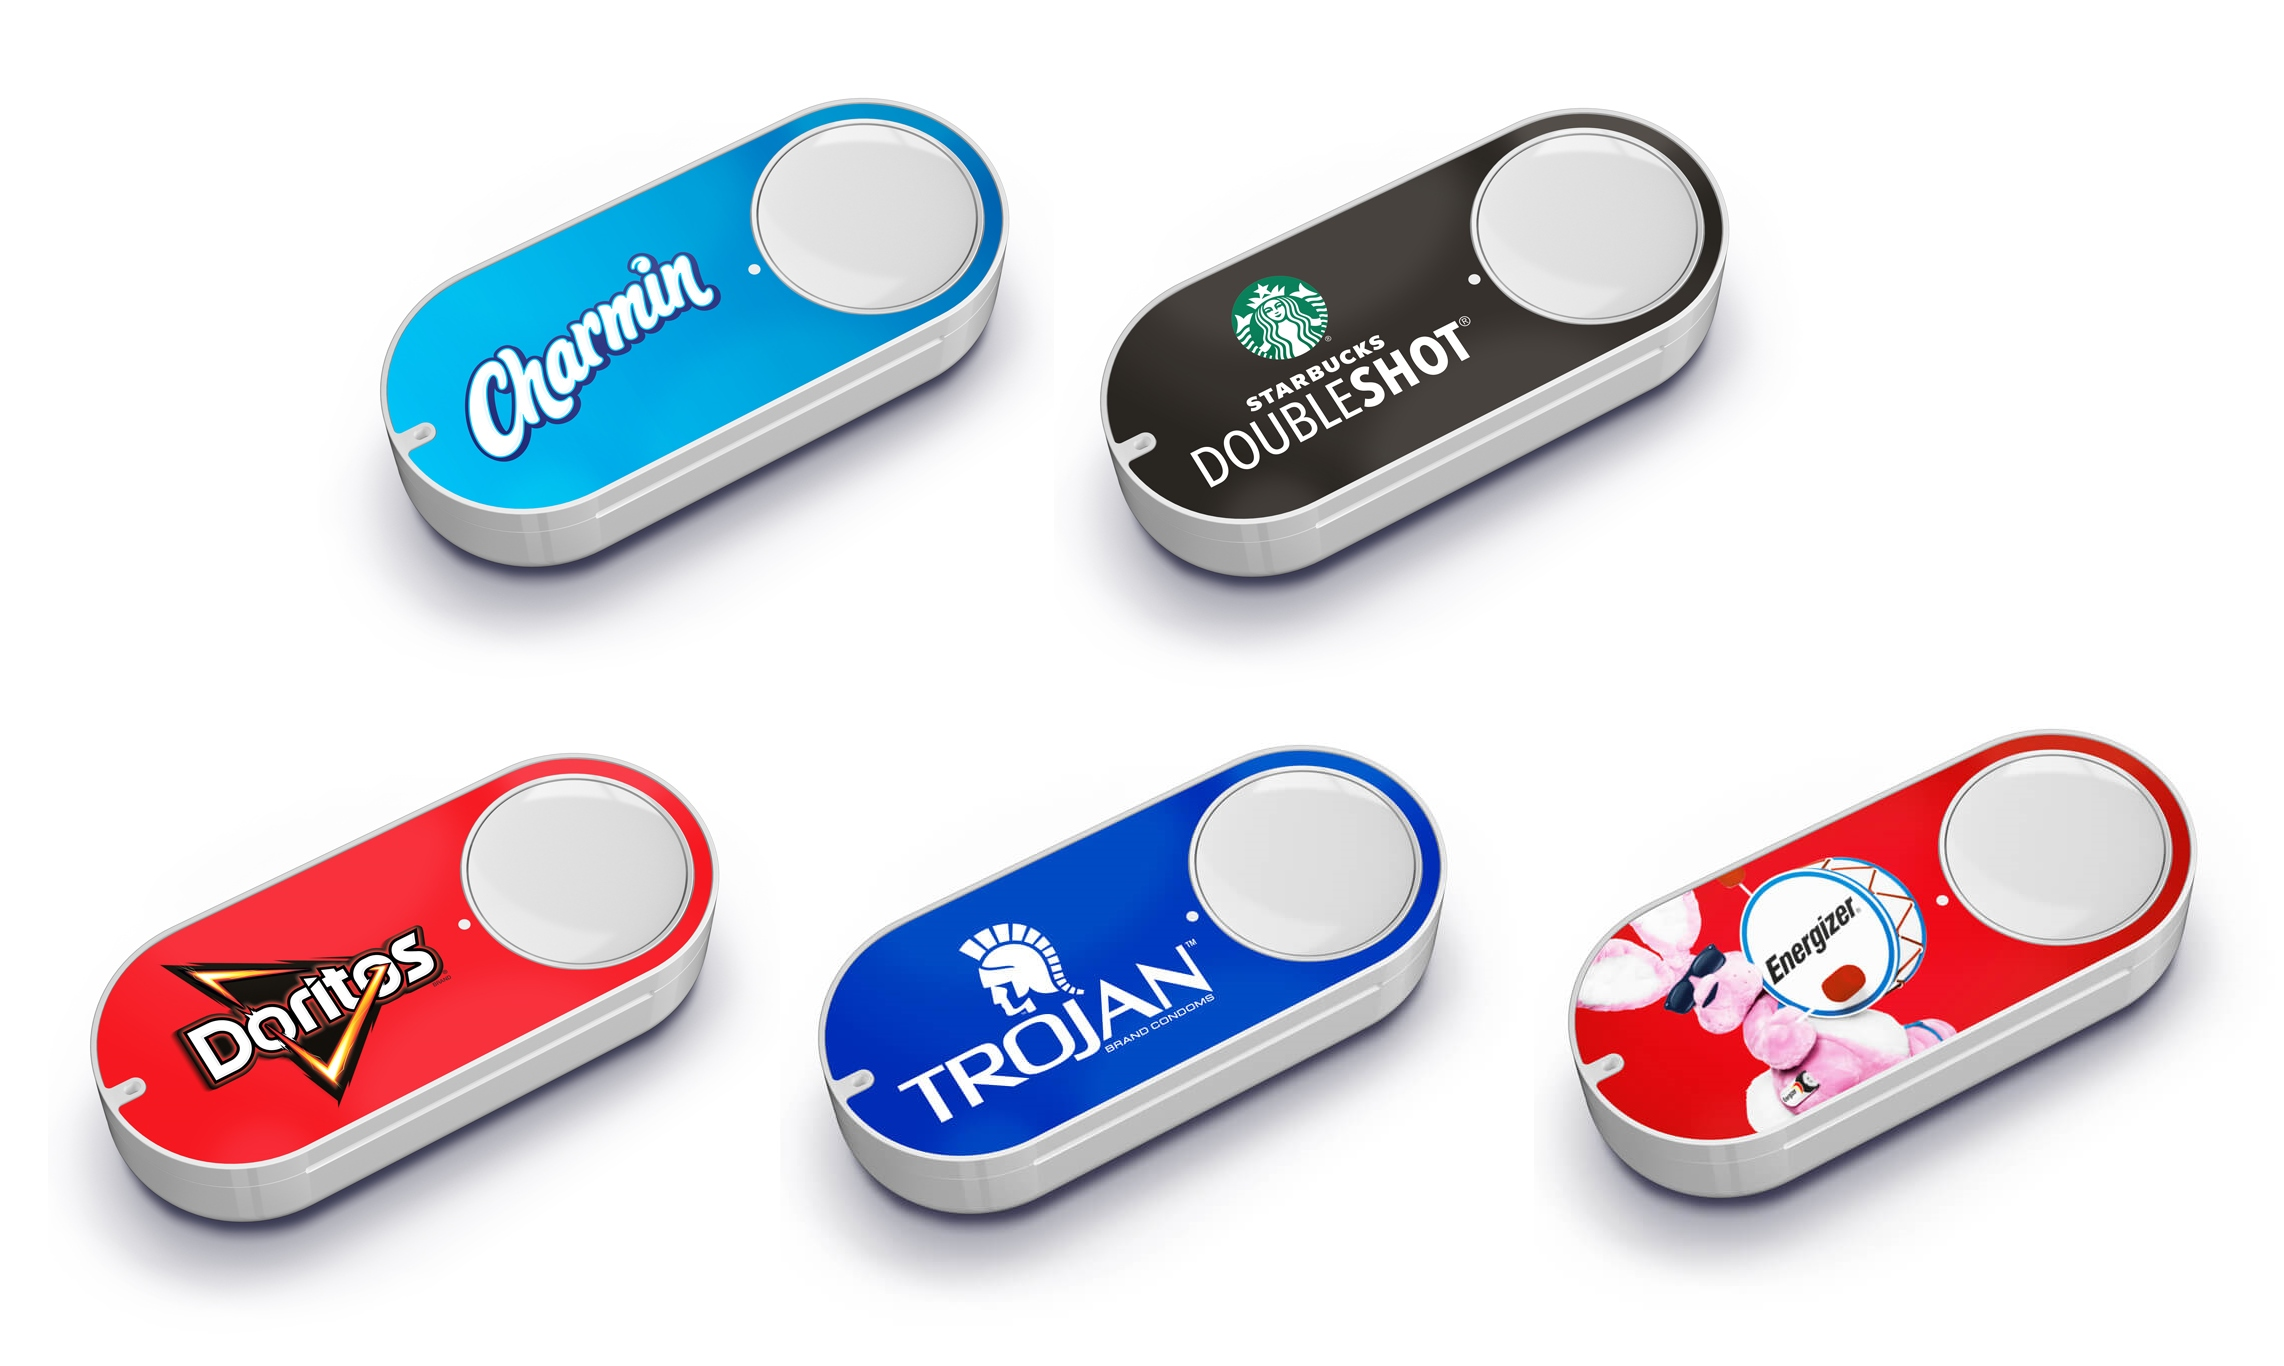 Amazon Triples Dash Button Line with Over 100 Products